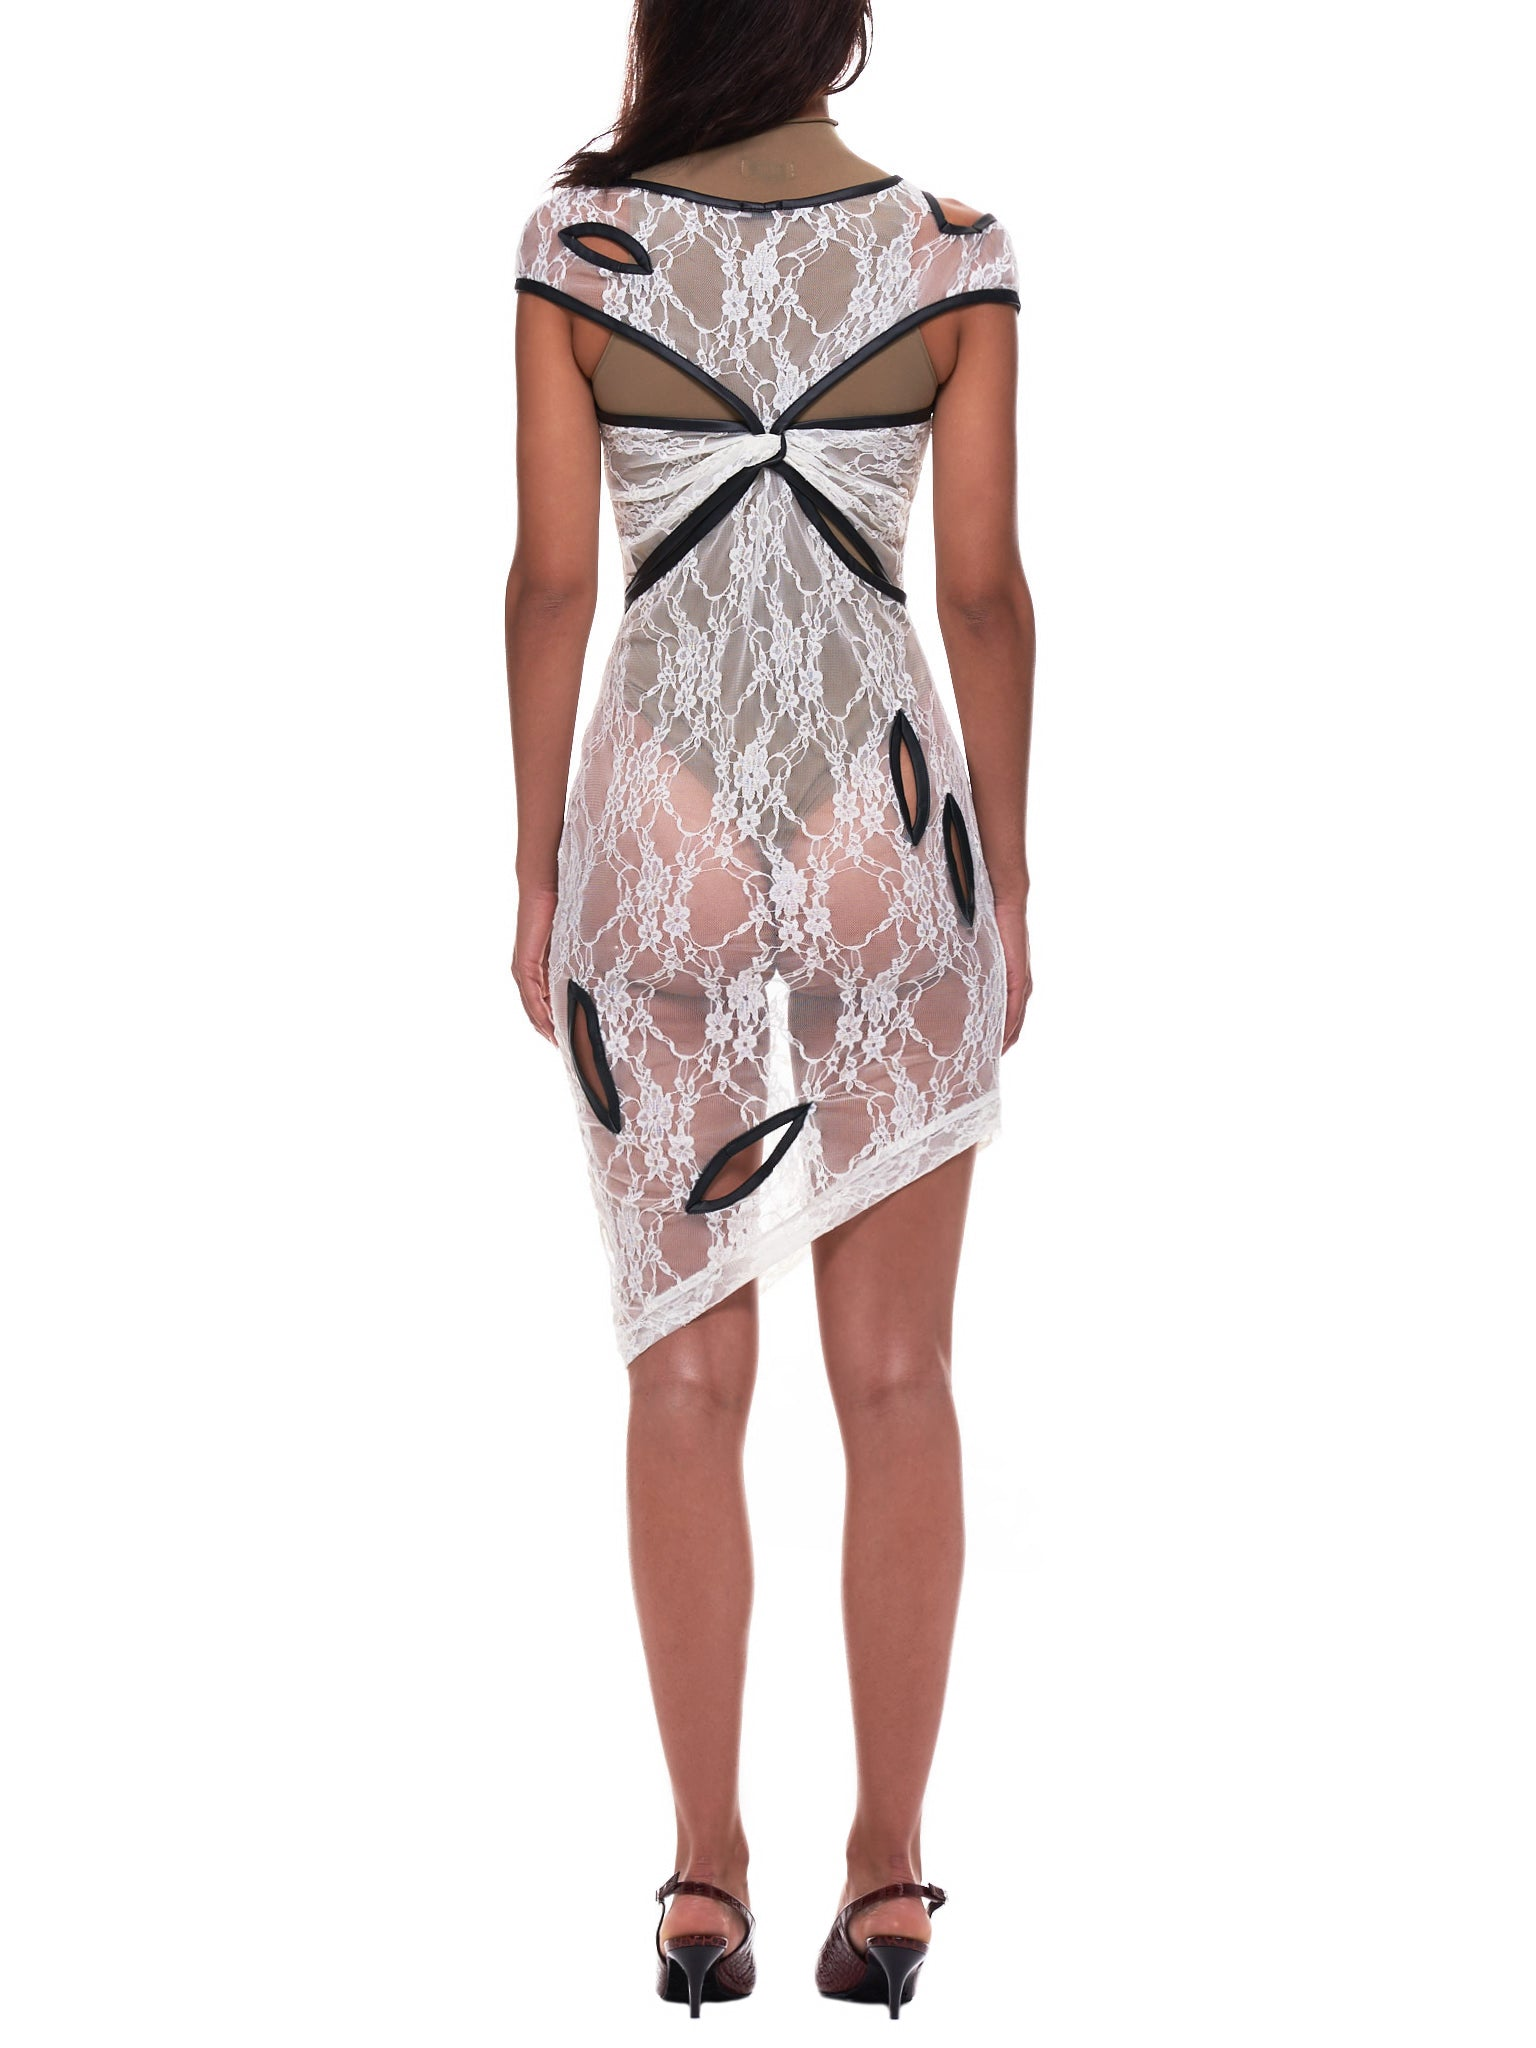 Voodoo Dress (B-23-WHITE)